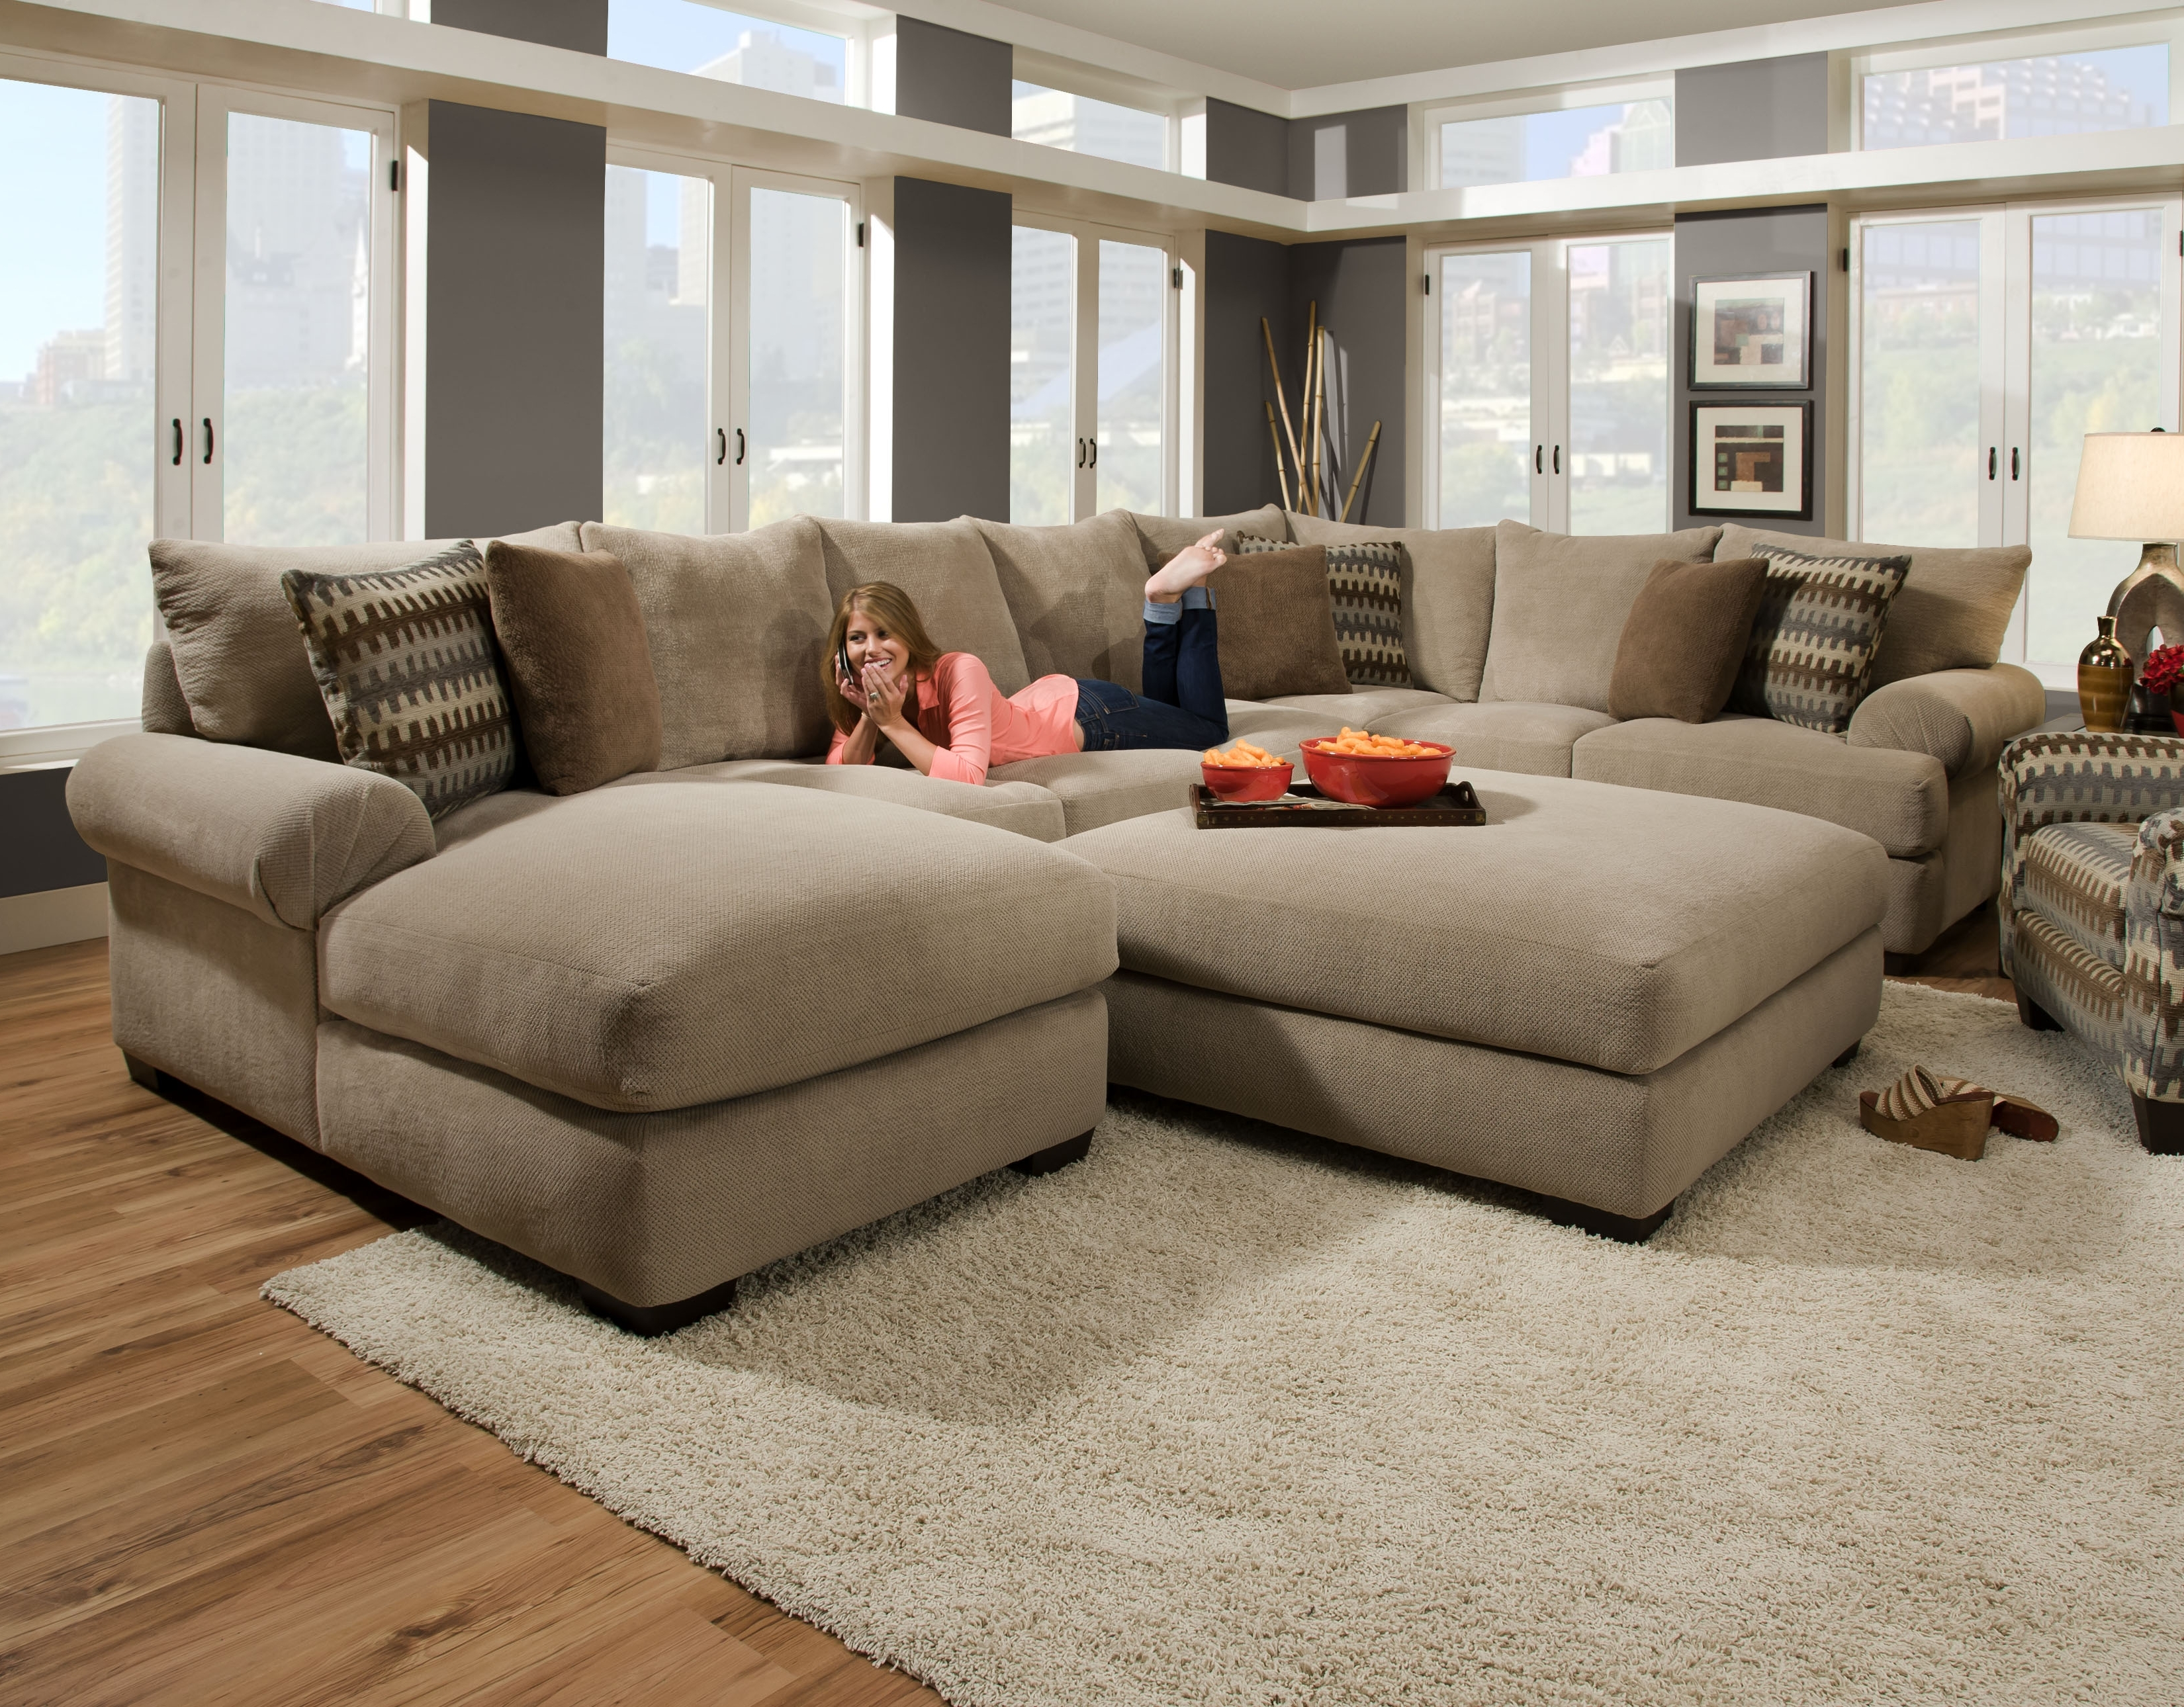 Favorite Furniture: American Freight Sectionals For Luxury Living Room With Regard To Pensacola Fl Sectional Sofas (View 8 of 20)